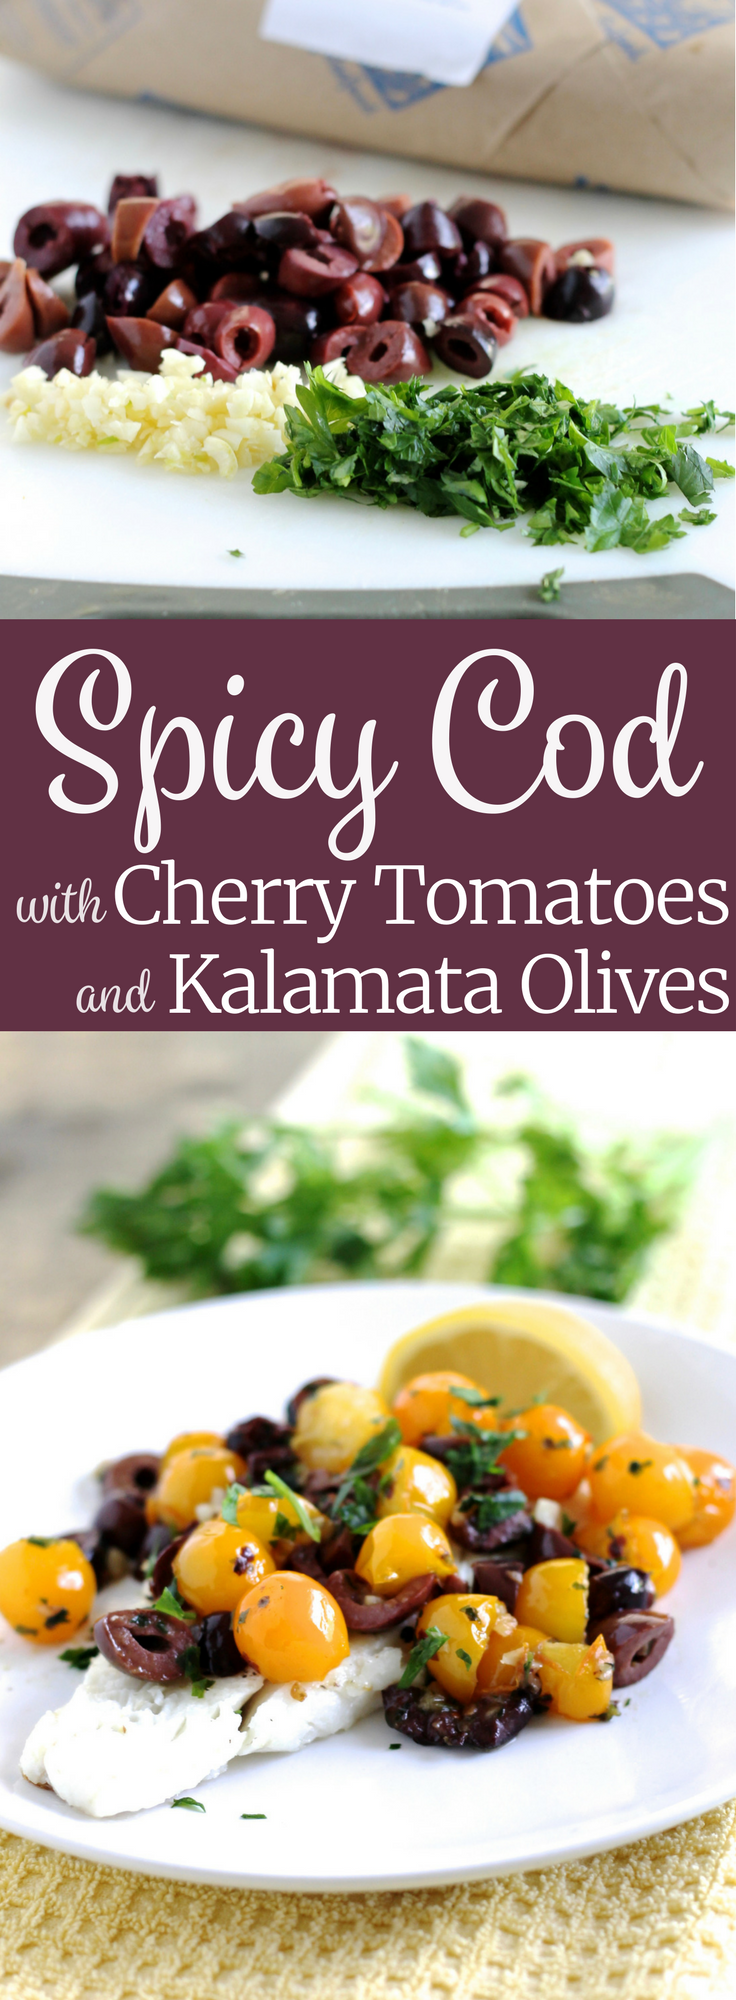 Spicy Cod with Cherry Tomatoes and Kalamata Olives ll Healthy, Quick, and Simple! Easy enough for a delicious weeknight dinner. ll www.littlechefbigappetite.com